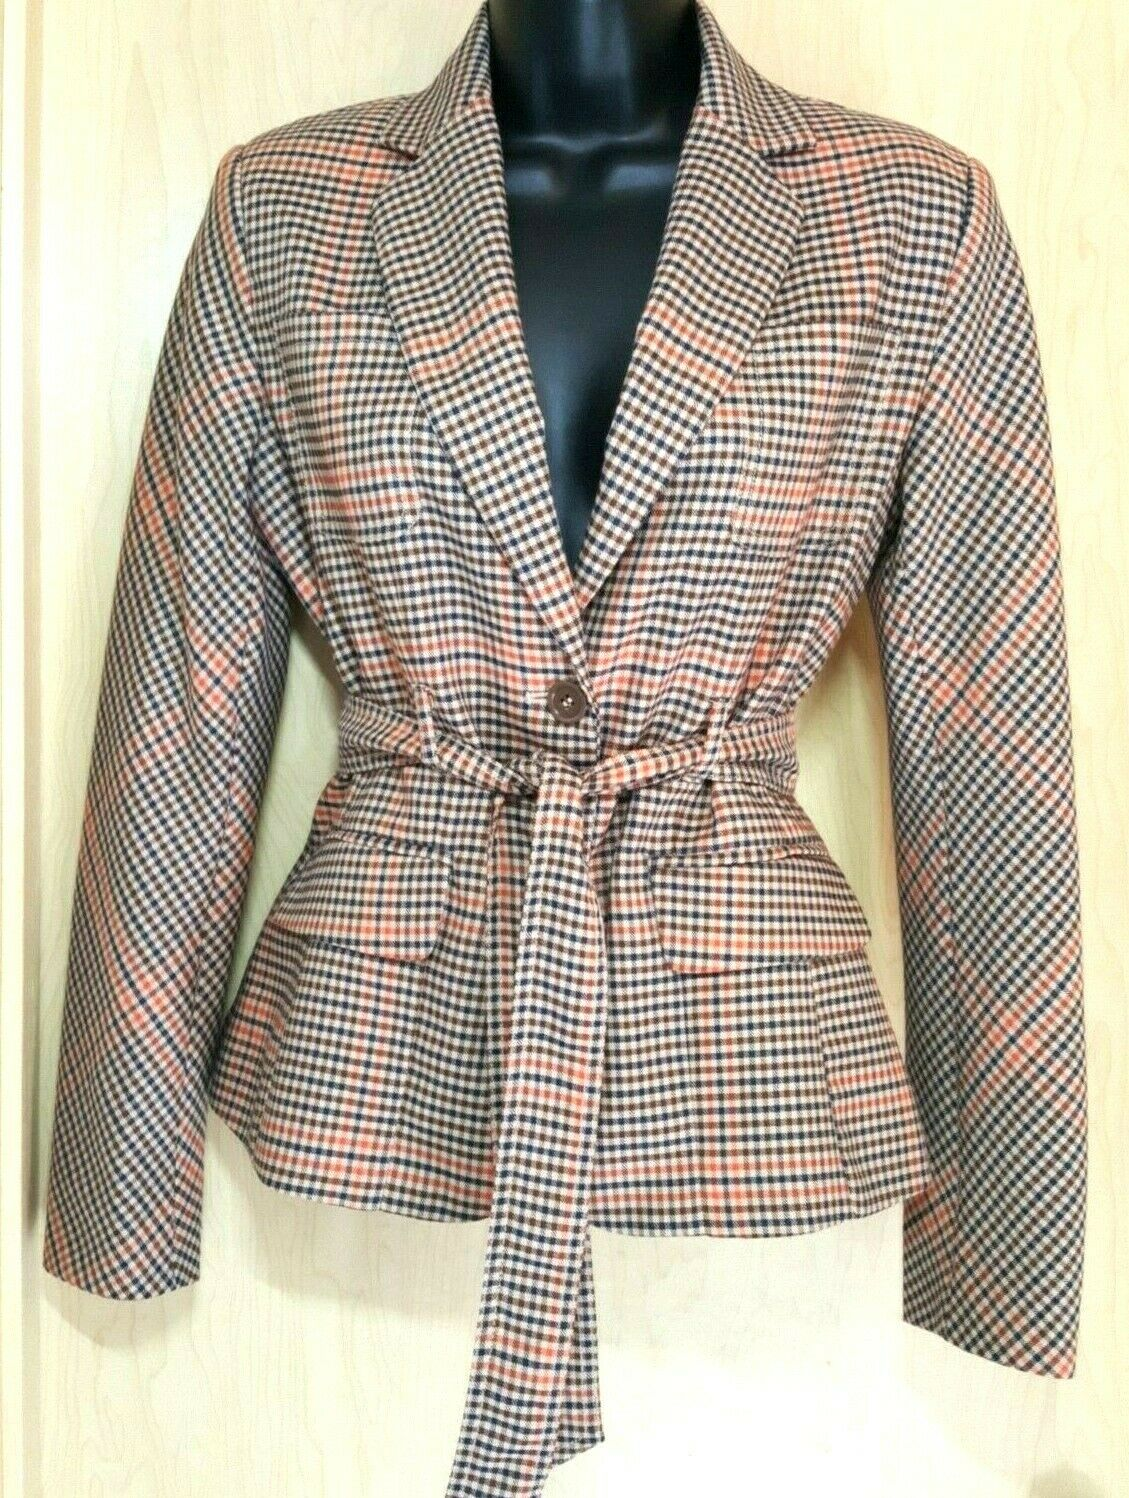 7th Ave Suiting Plaid Belted Career Blazer XS-S New York & Co bluee orange Brown